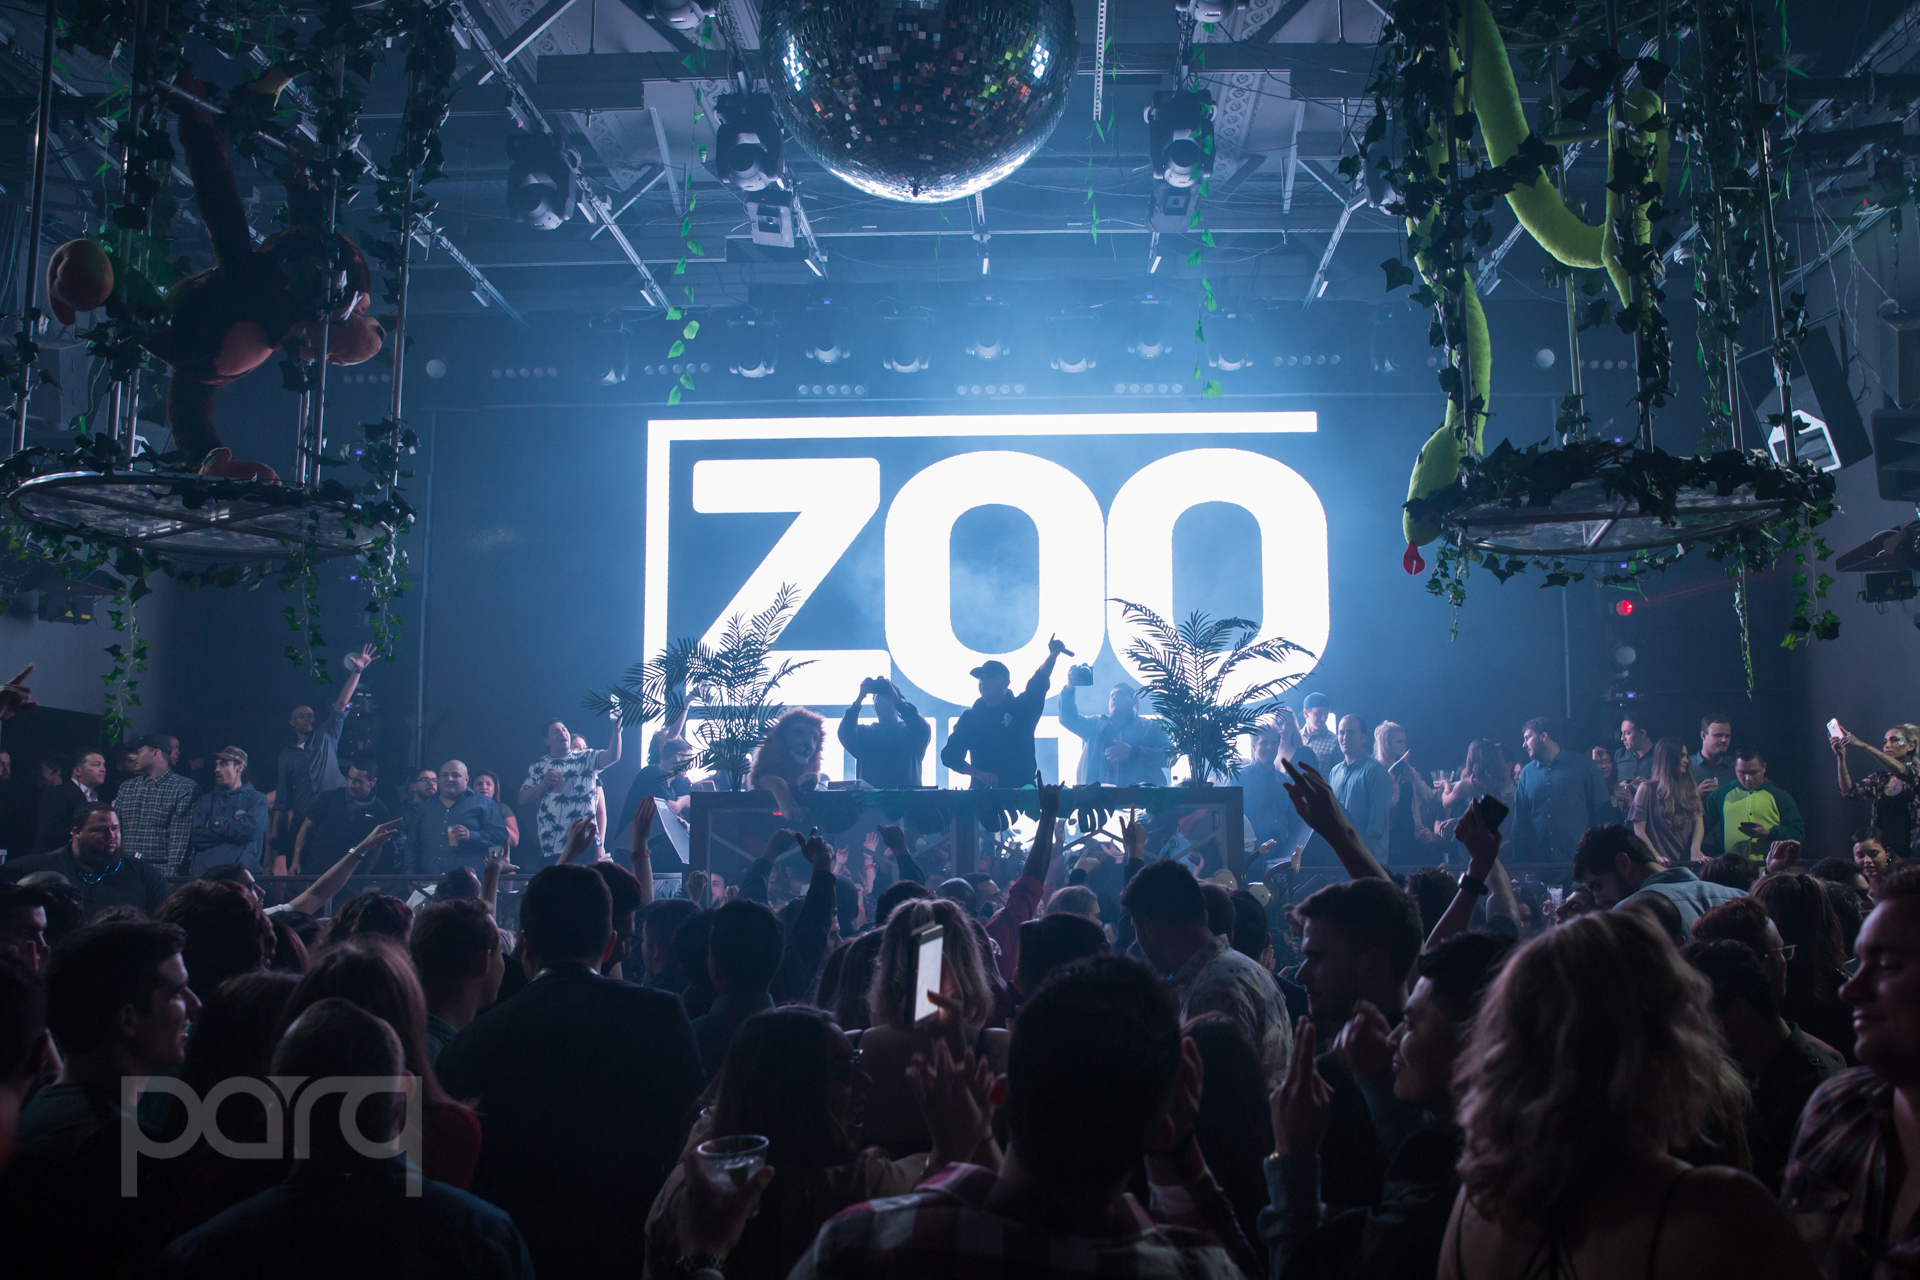 San-Diego-Nightclub-Zoo Funktion-1.jpg